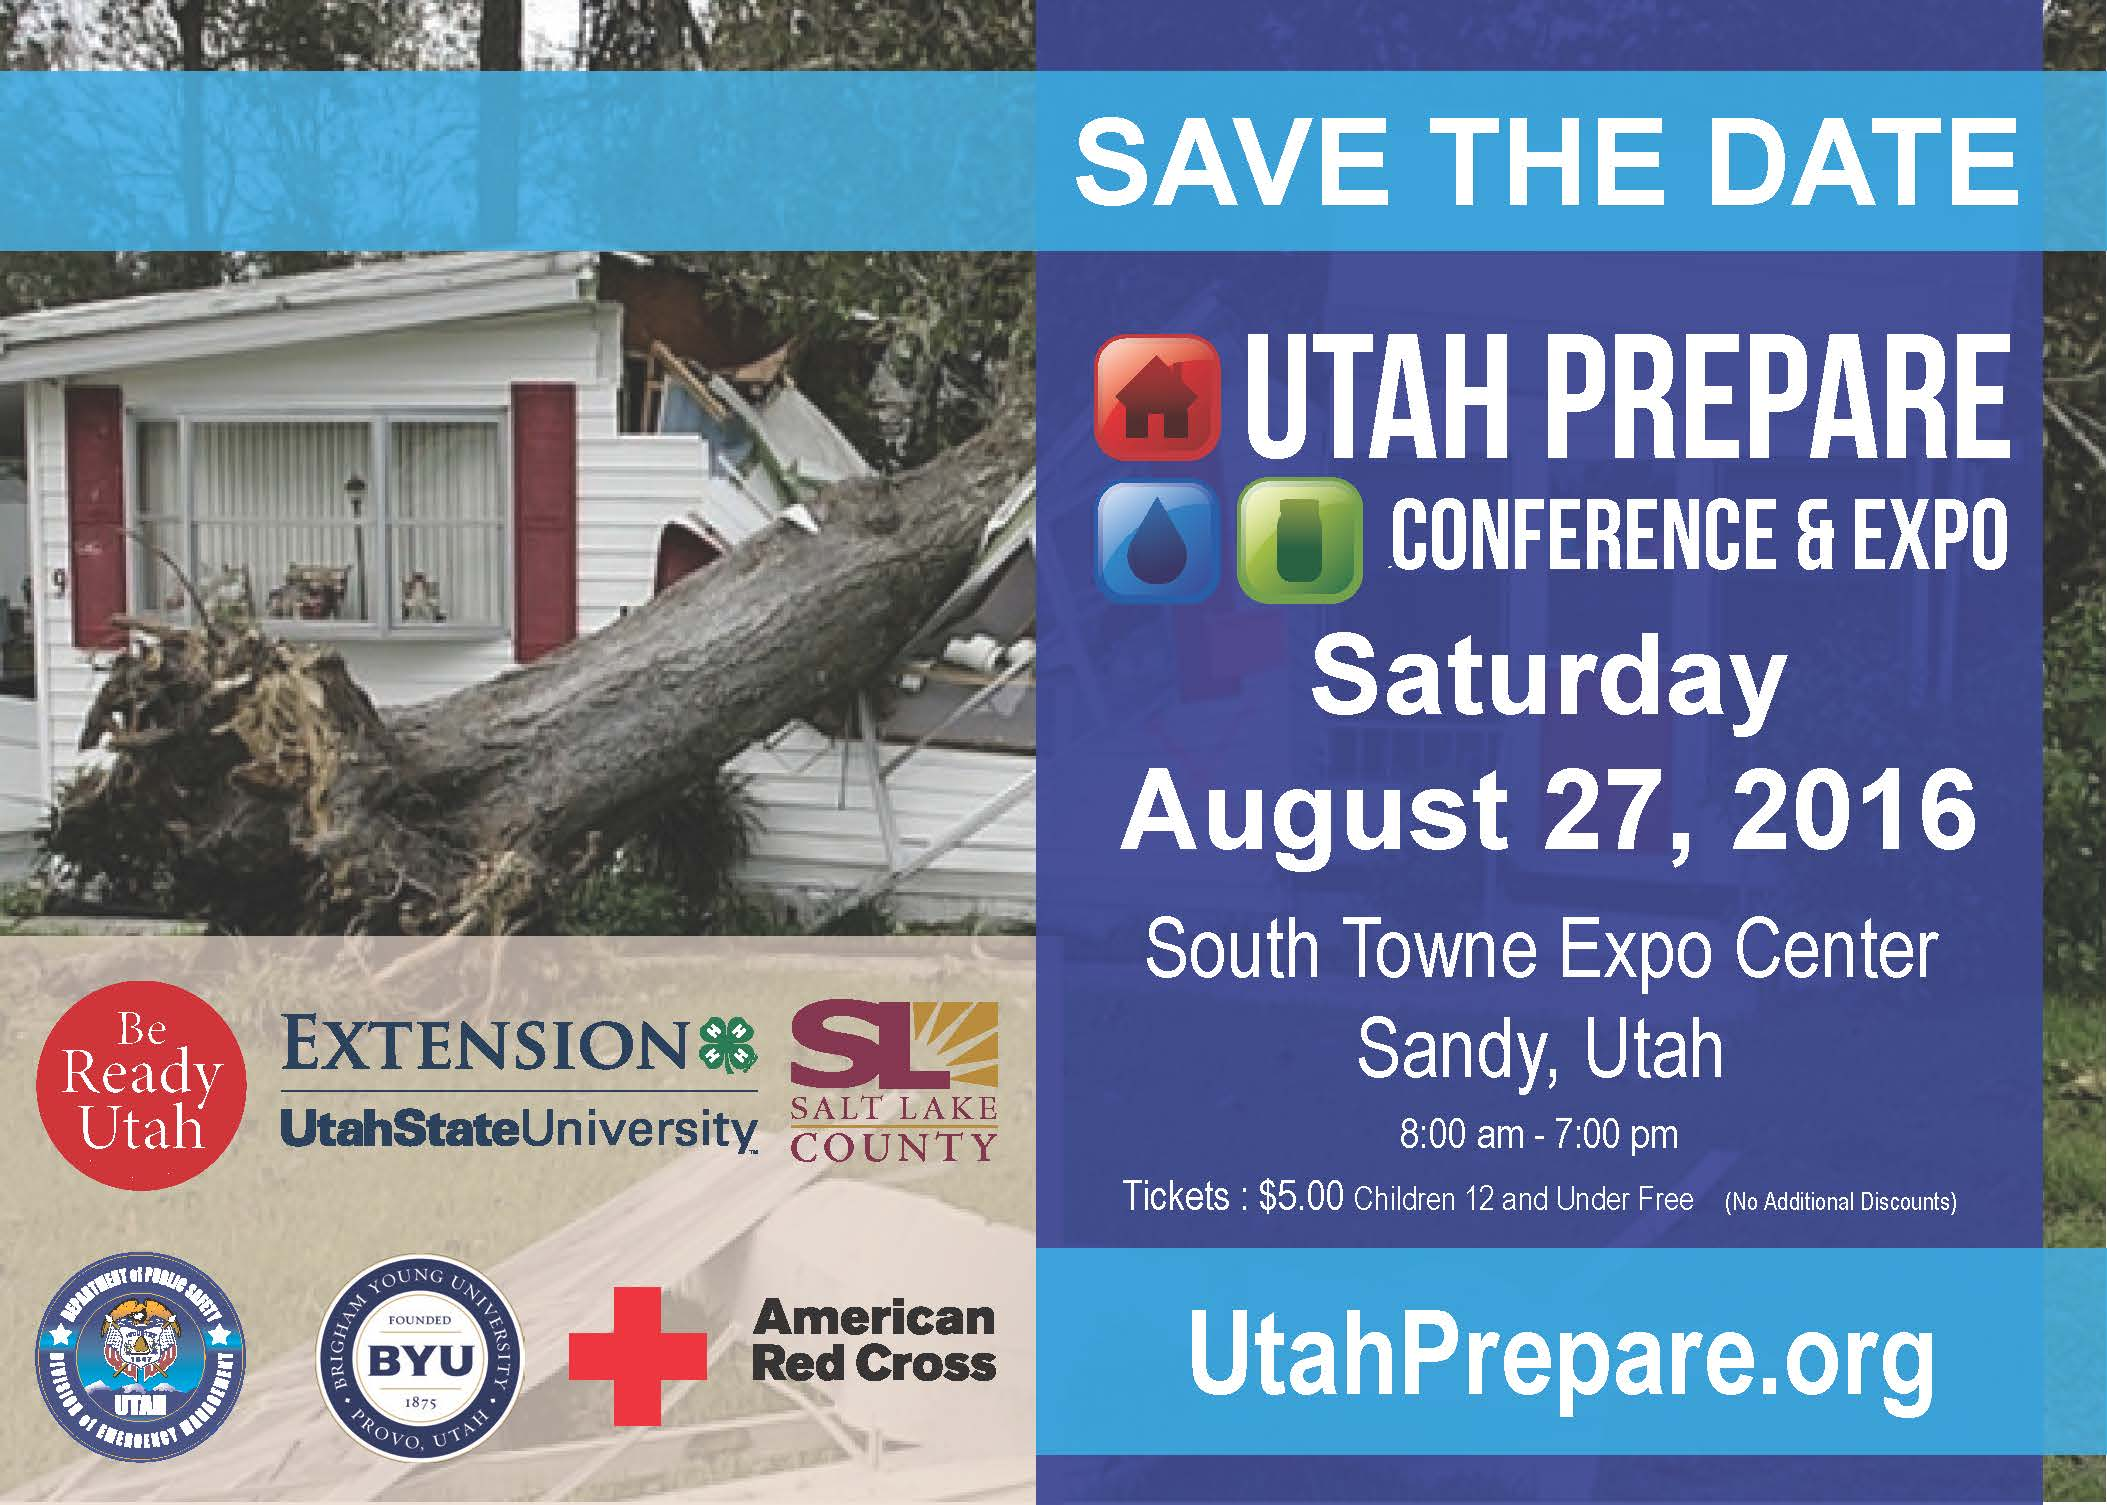 Utah PREPARE Conf. & Expo Announcement